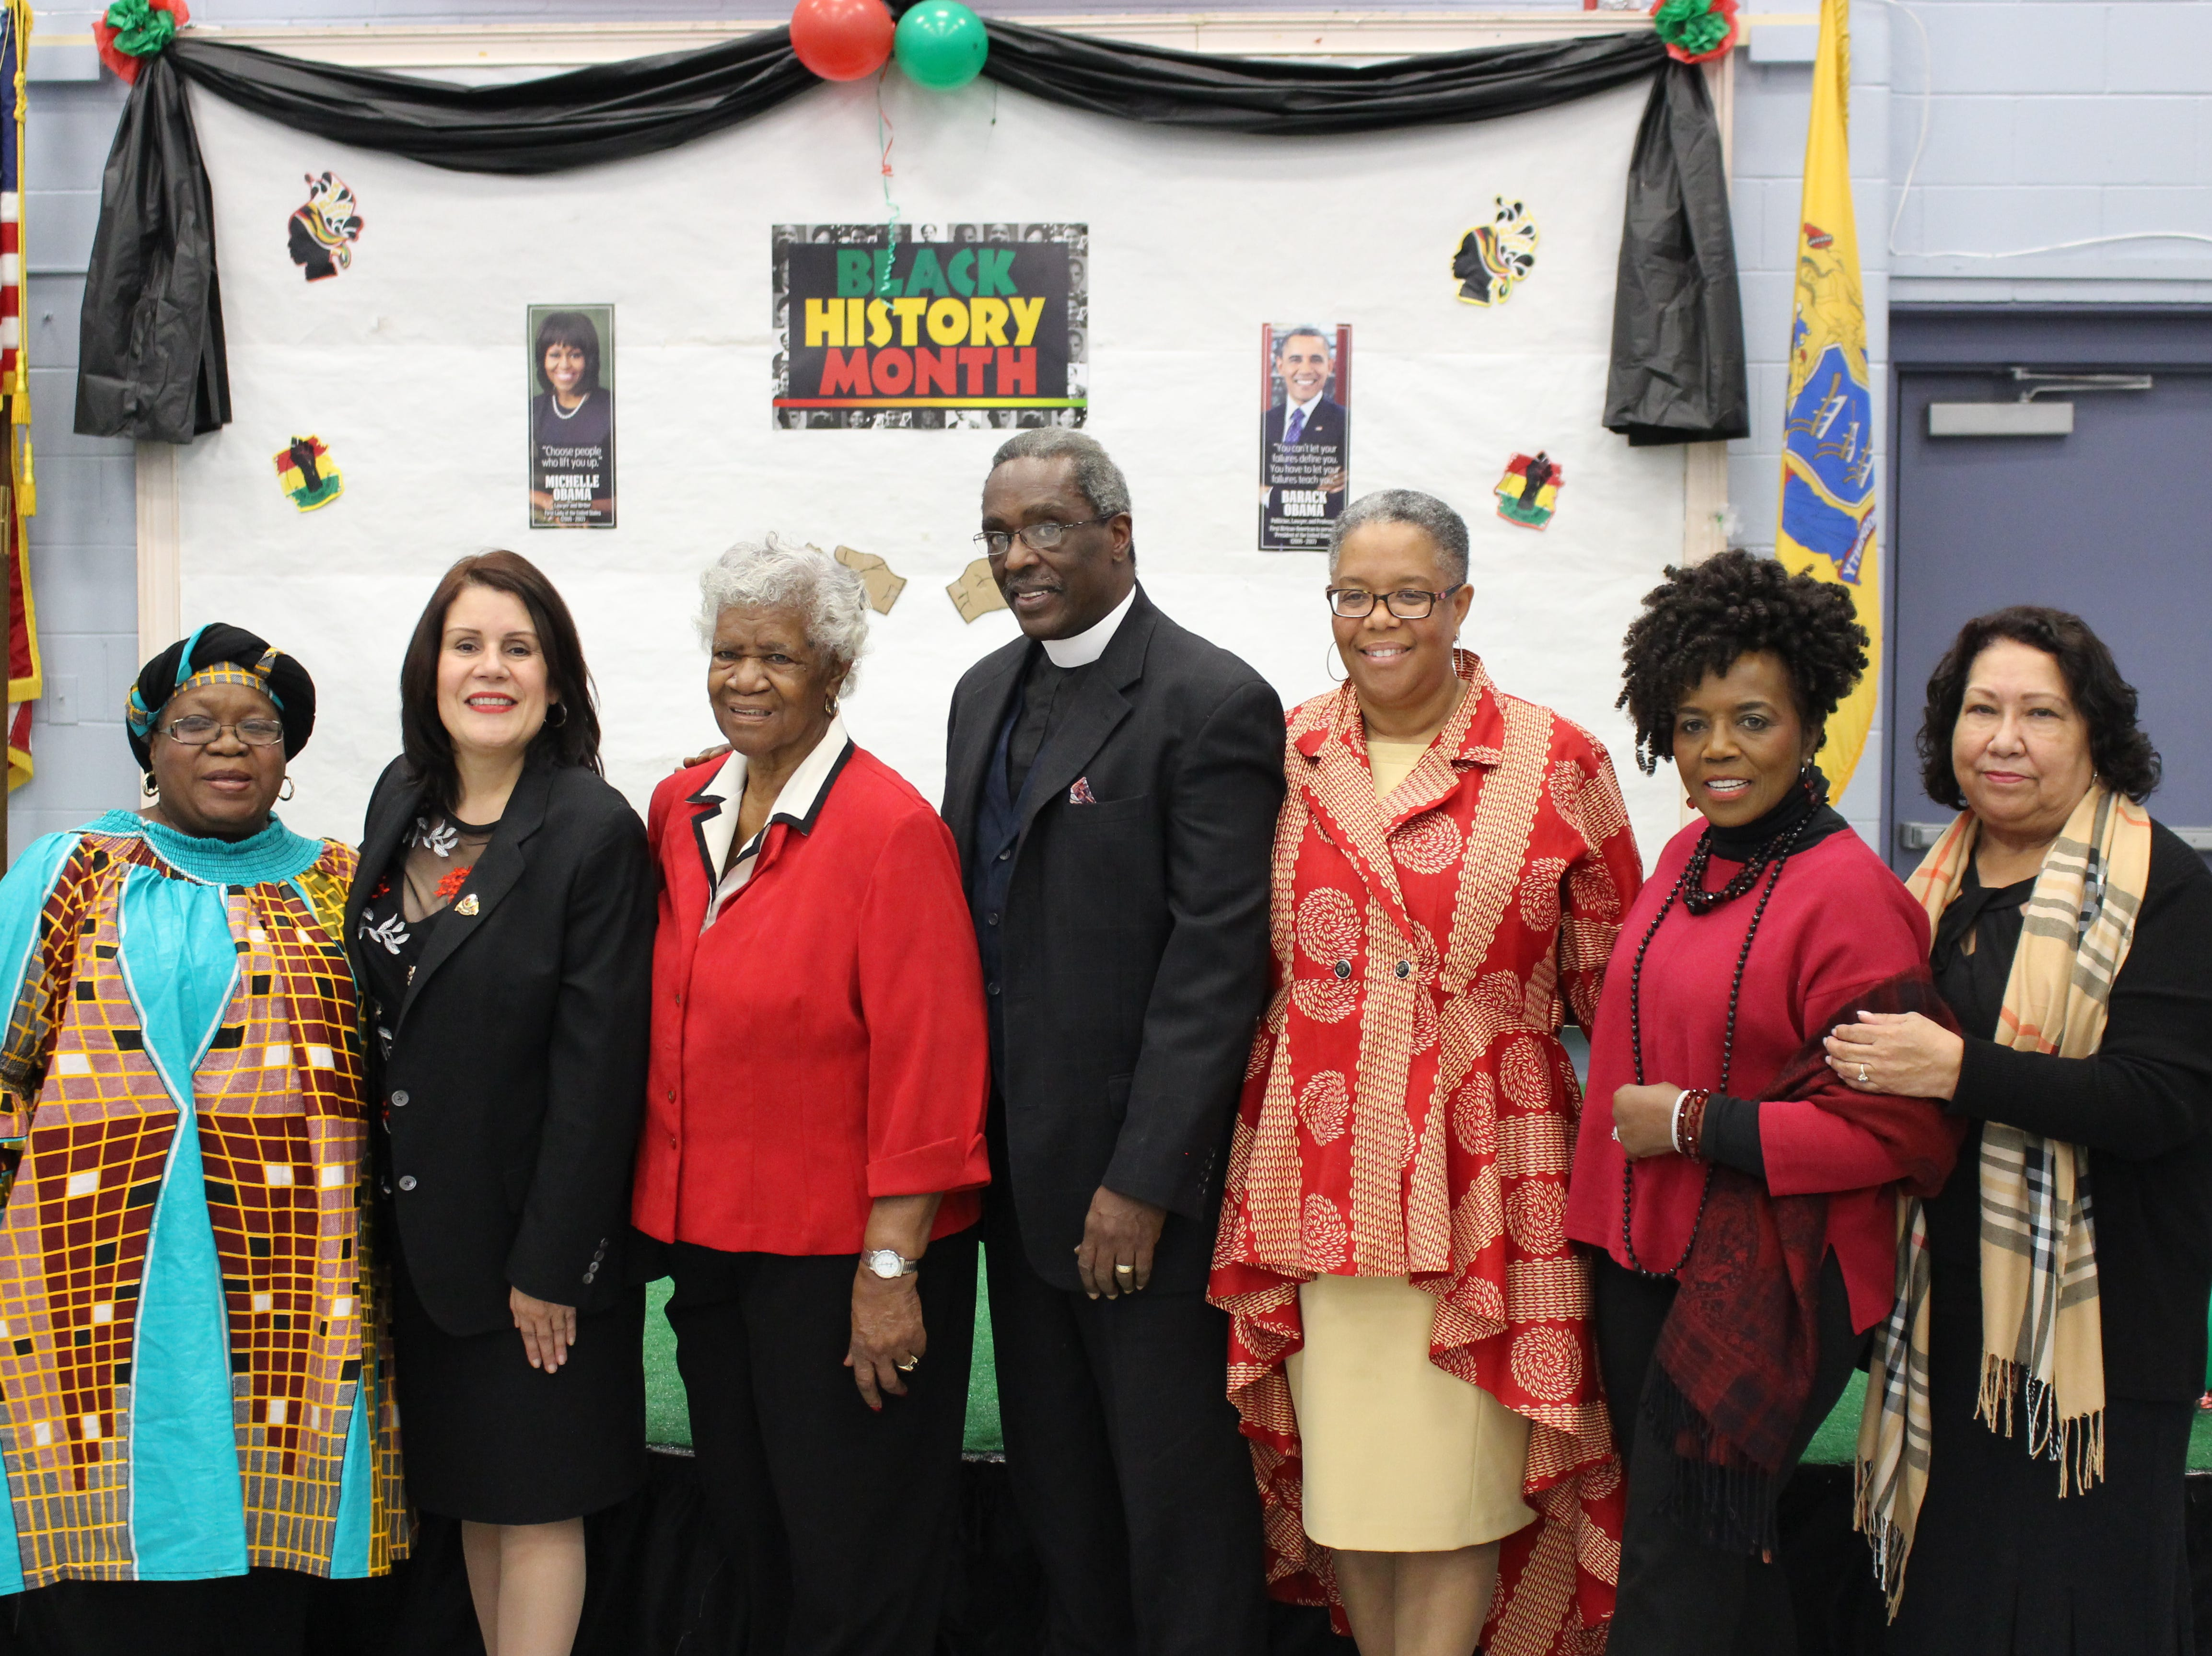 On Tuesday, Feb. 19, Perth Amboy Mayor Wilda Diaz and the Department of Human Service's Office on Aging hosted its annual Black History Month Celebration to honor the recipients of the Thomas Mundy Peterson Inspirational Award.